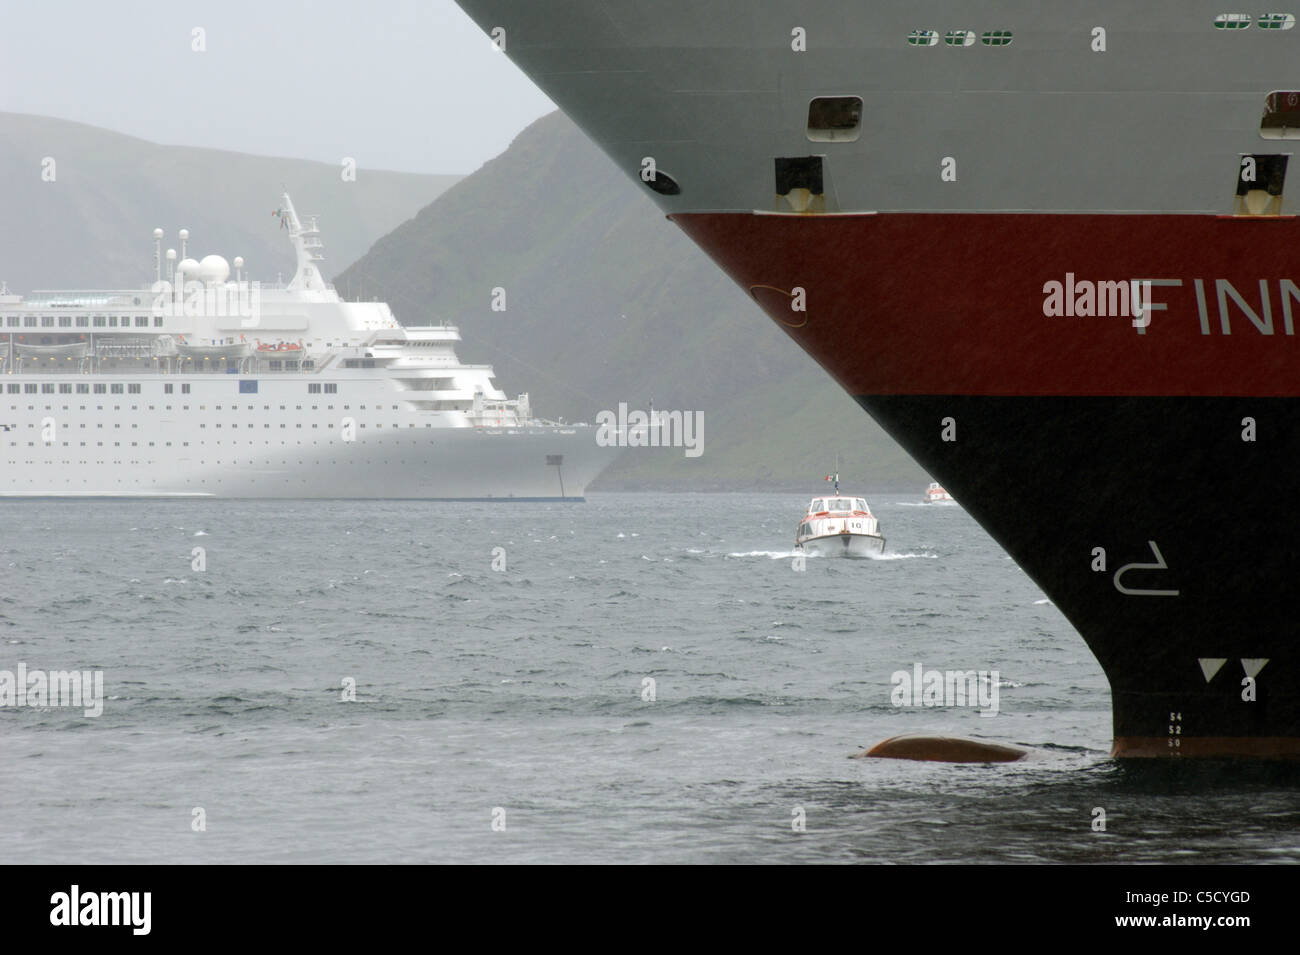 Close-up of a cropped nautical vessel in water with a ship in the background - Stock Image